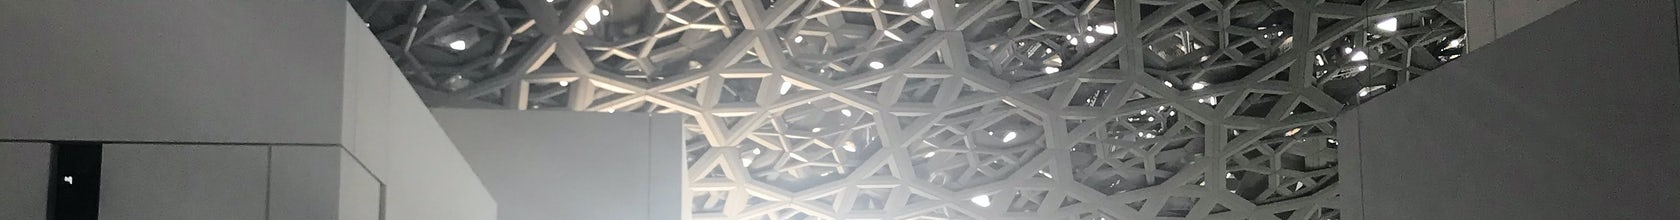 Louvre Abu Dhabi Museum skip-the-line tickets